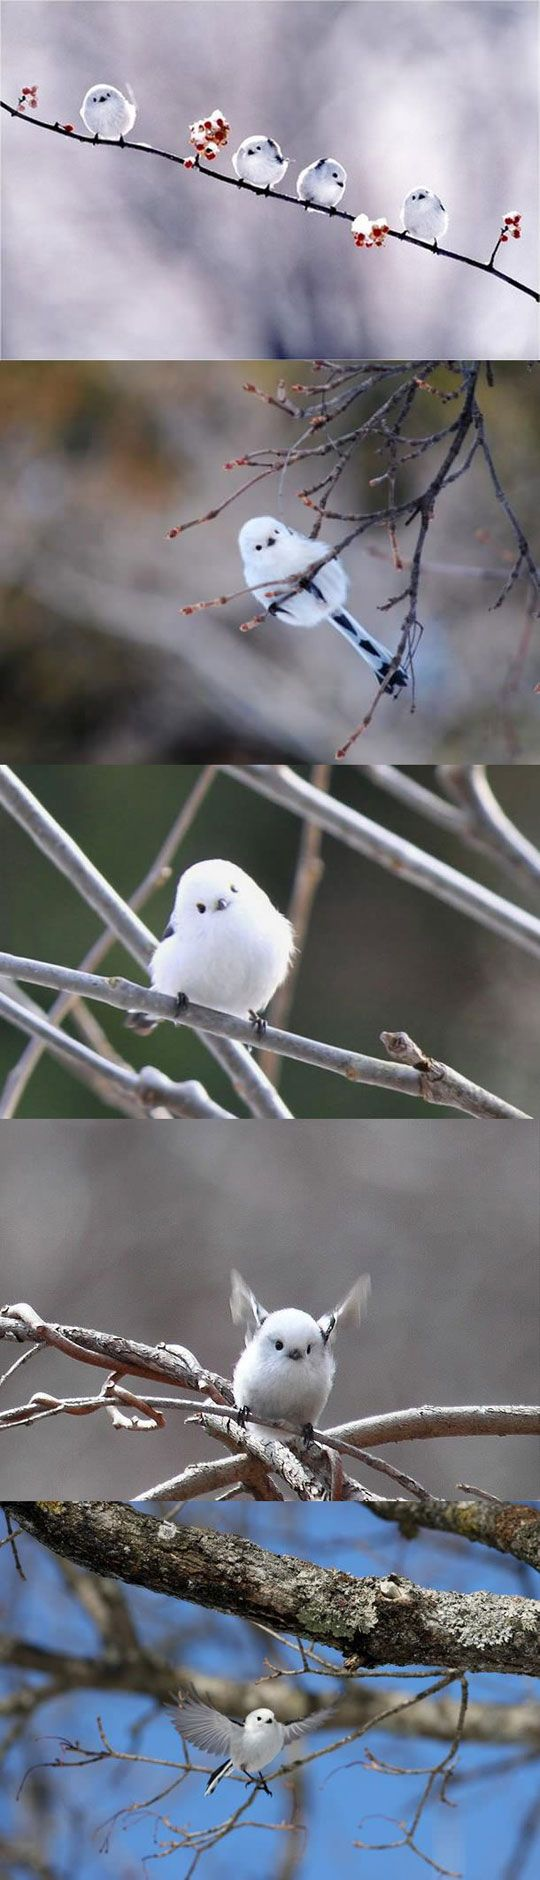 The cutest bird you'll see today… aaawwww